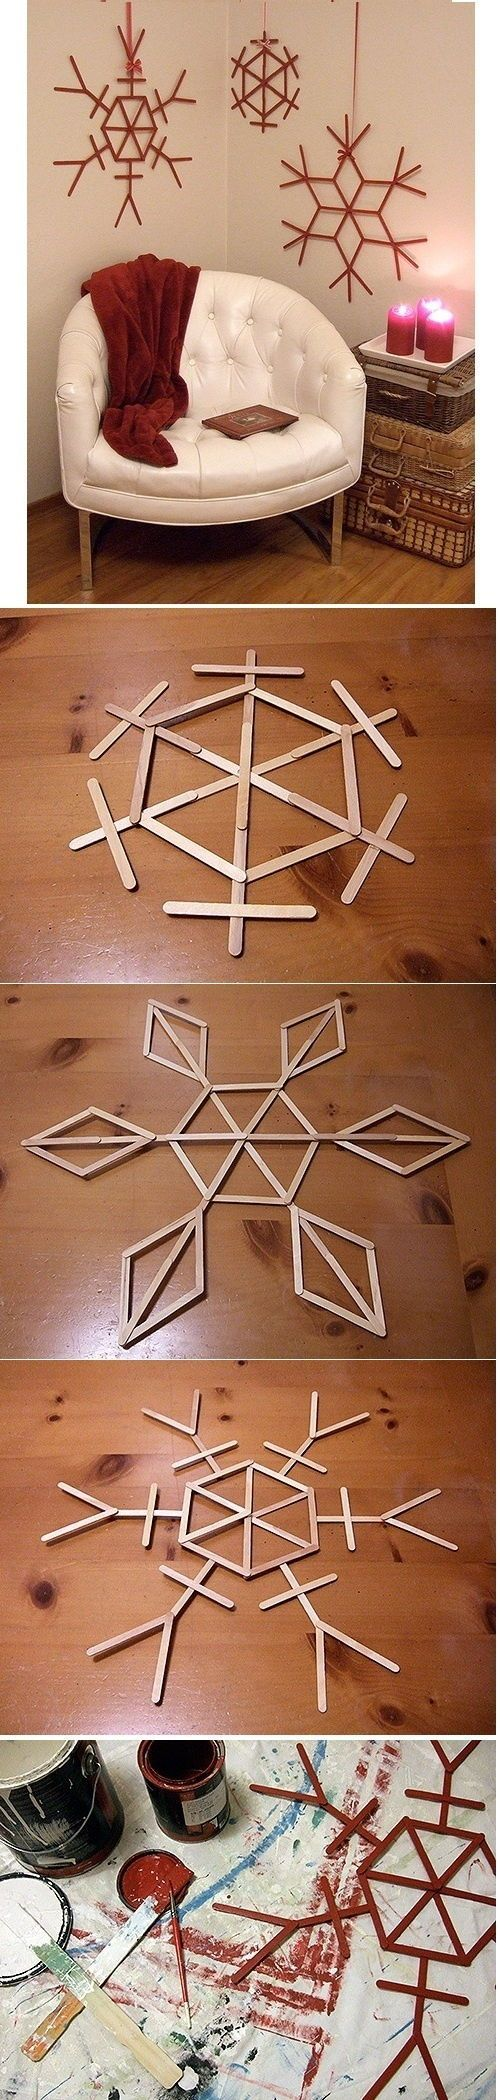 Christmas Craft; DIY Popsicle Stick Snowflakes.